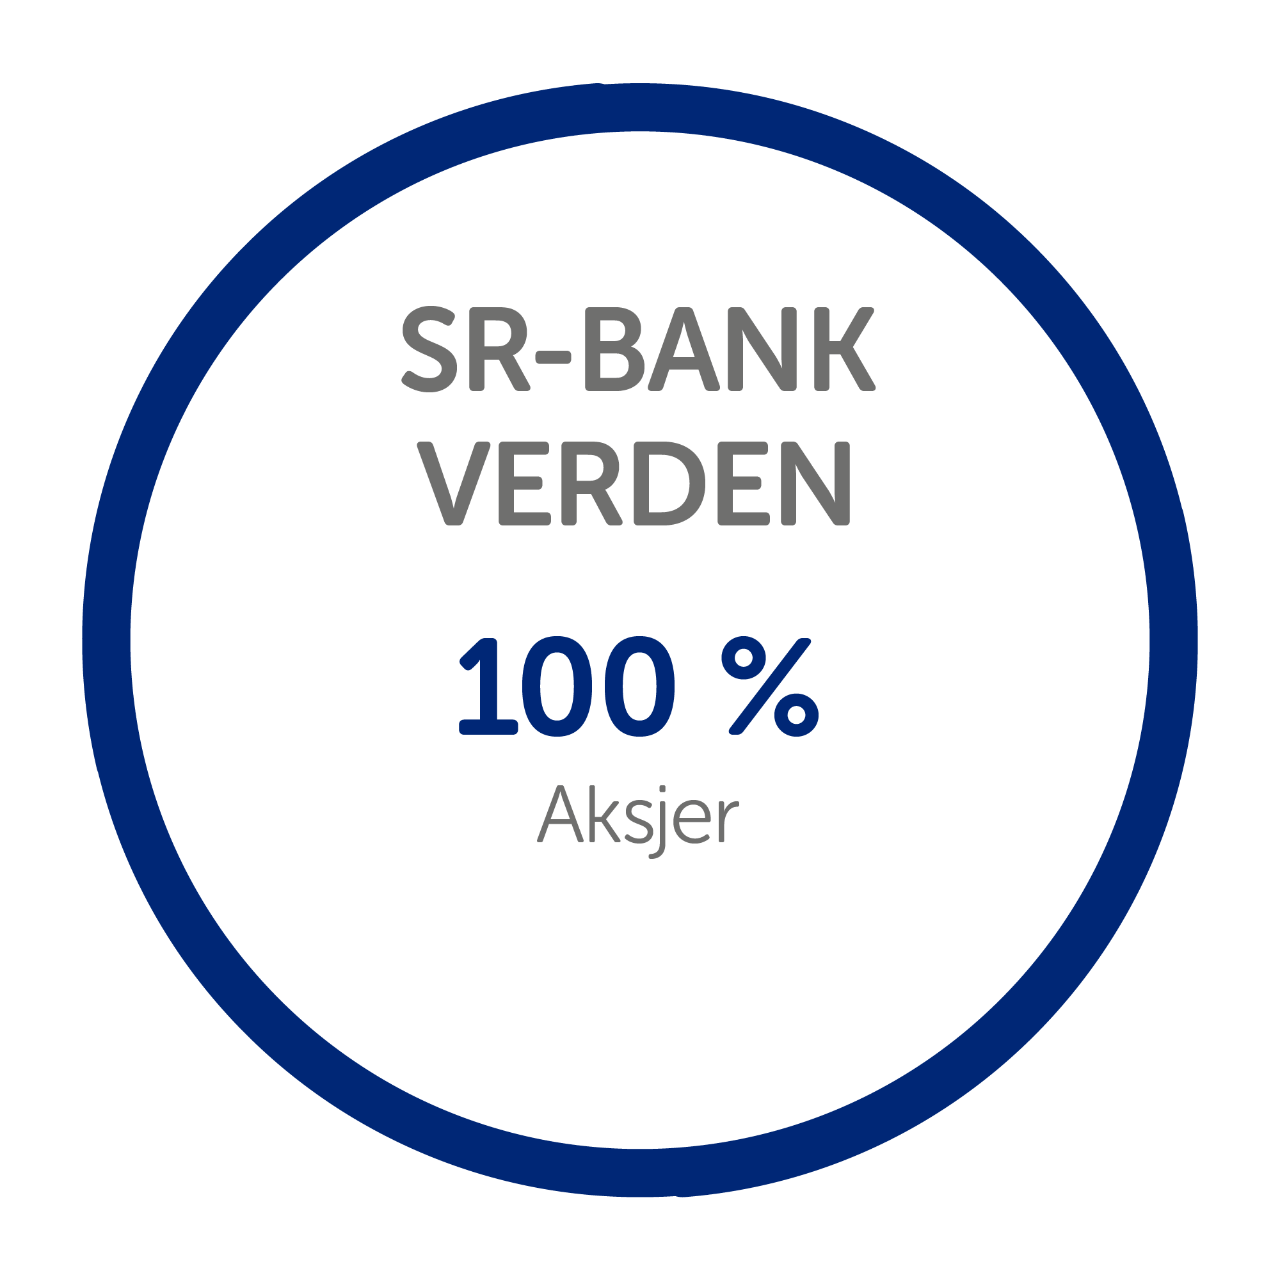 SR-Bank Verden kakediagram